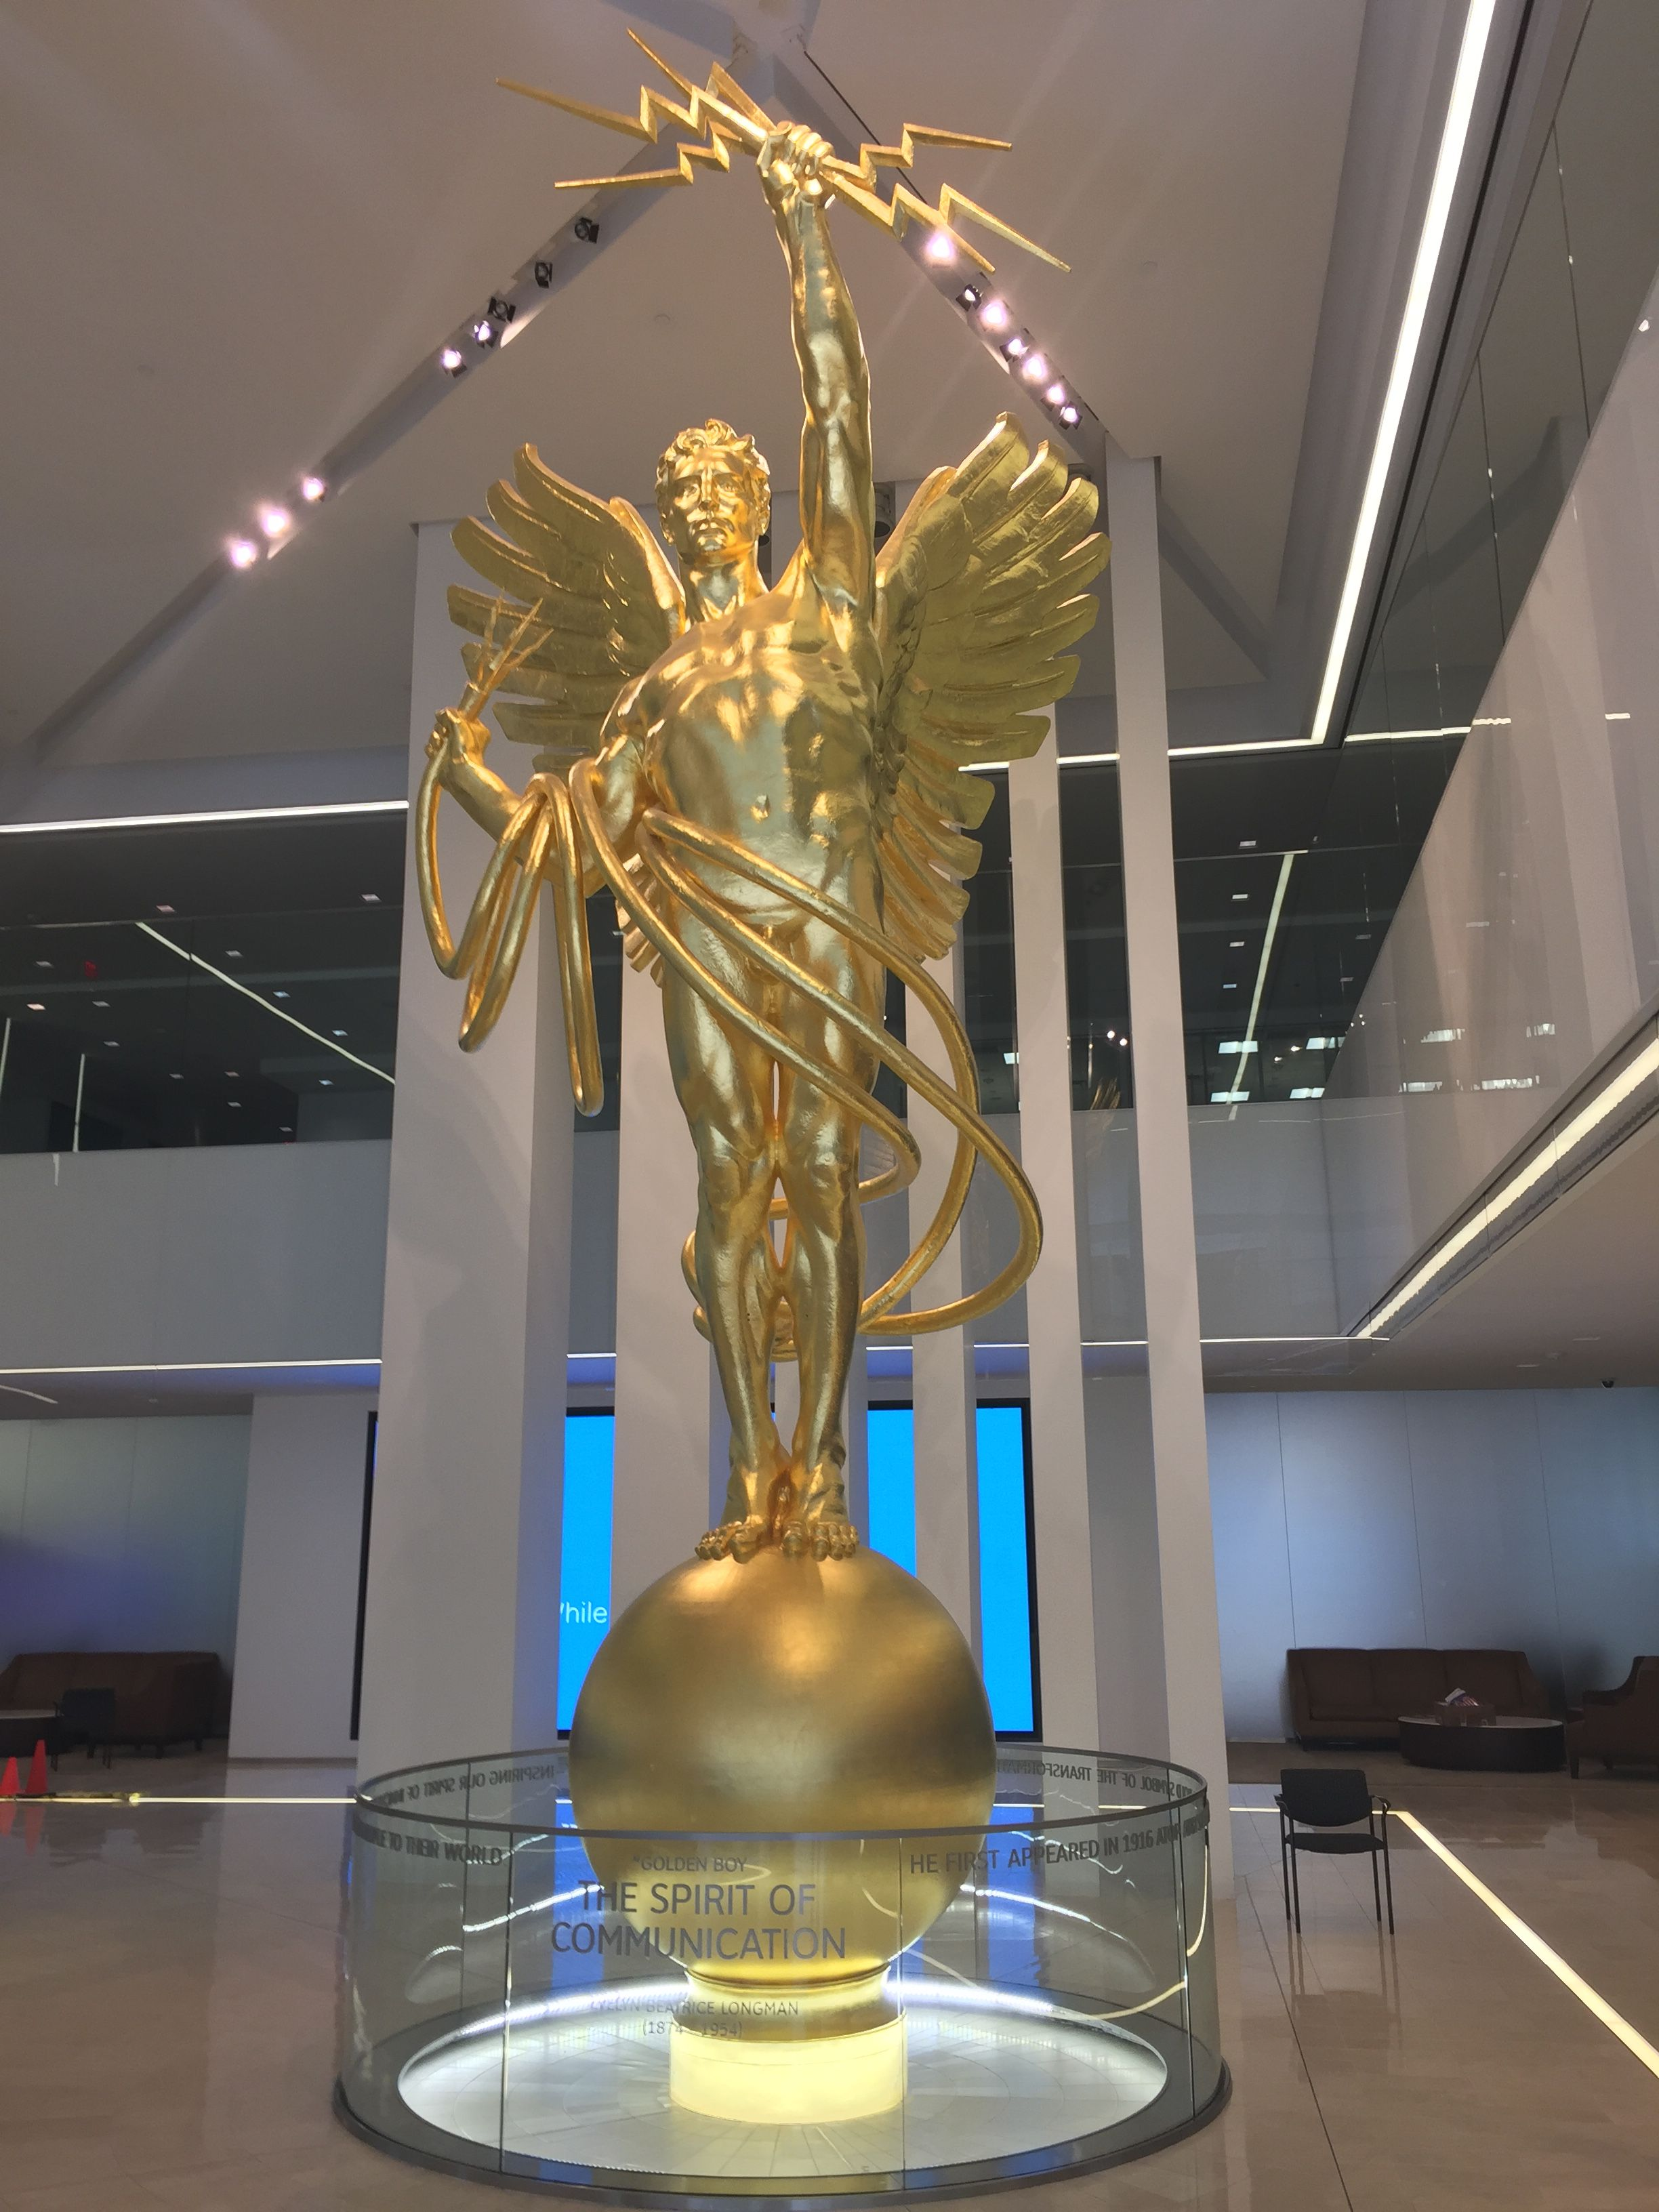 Golden Boy, Genius of Communications, AT&T Headquarters